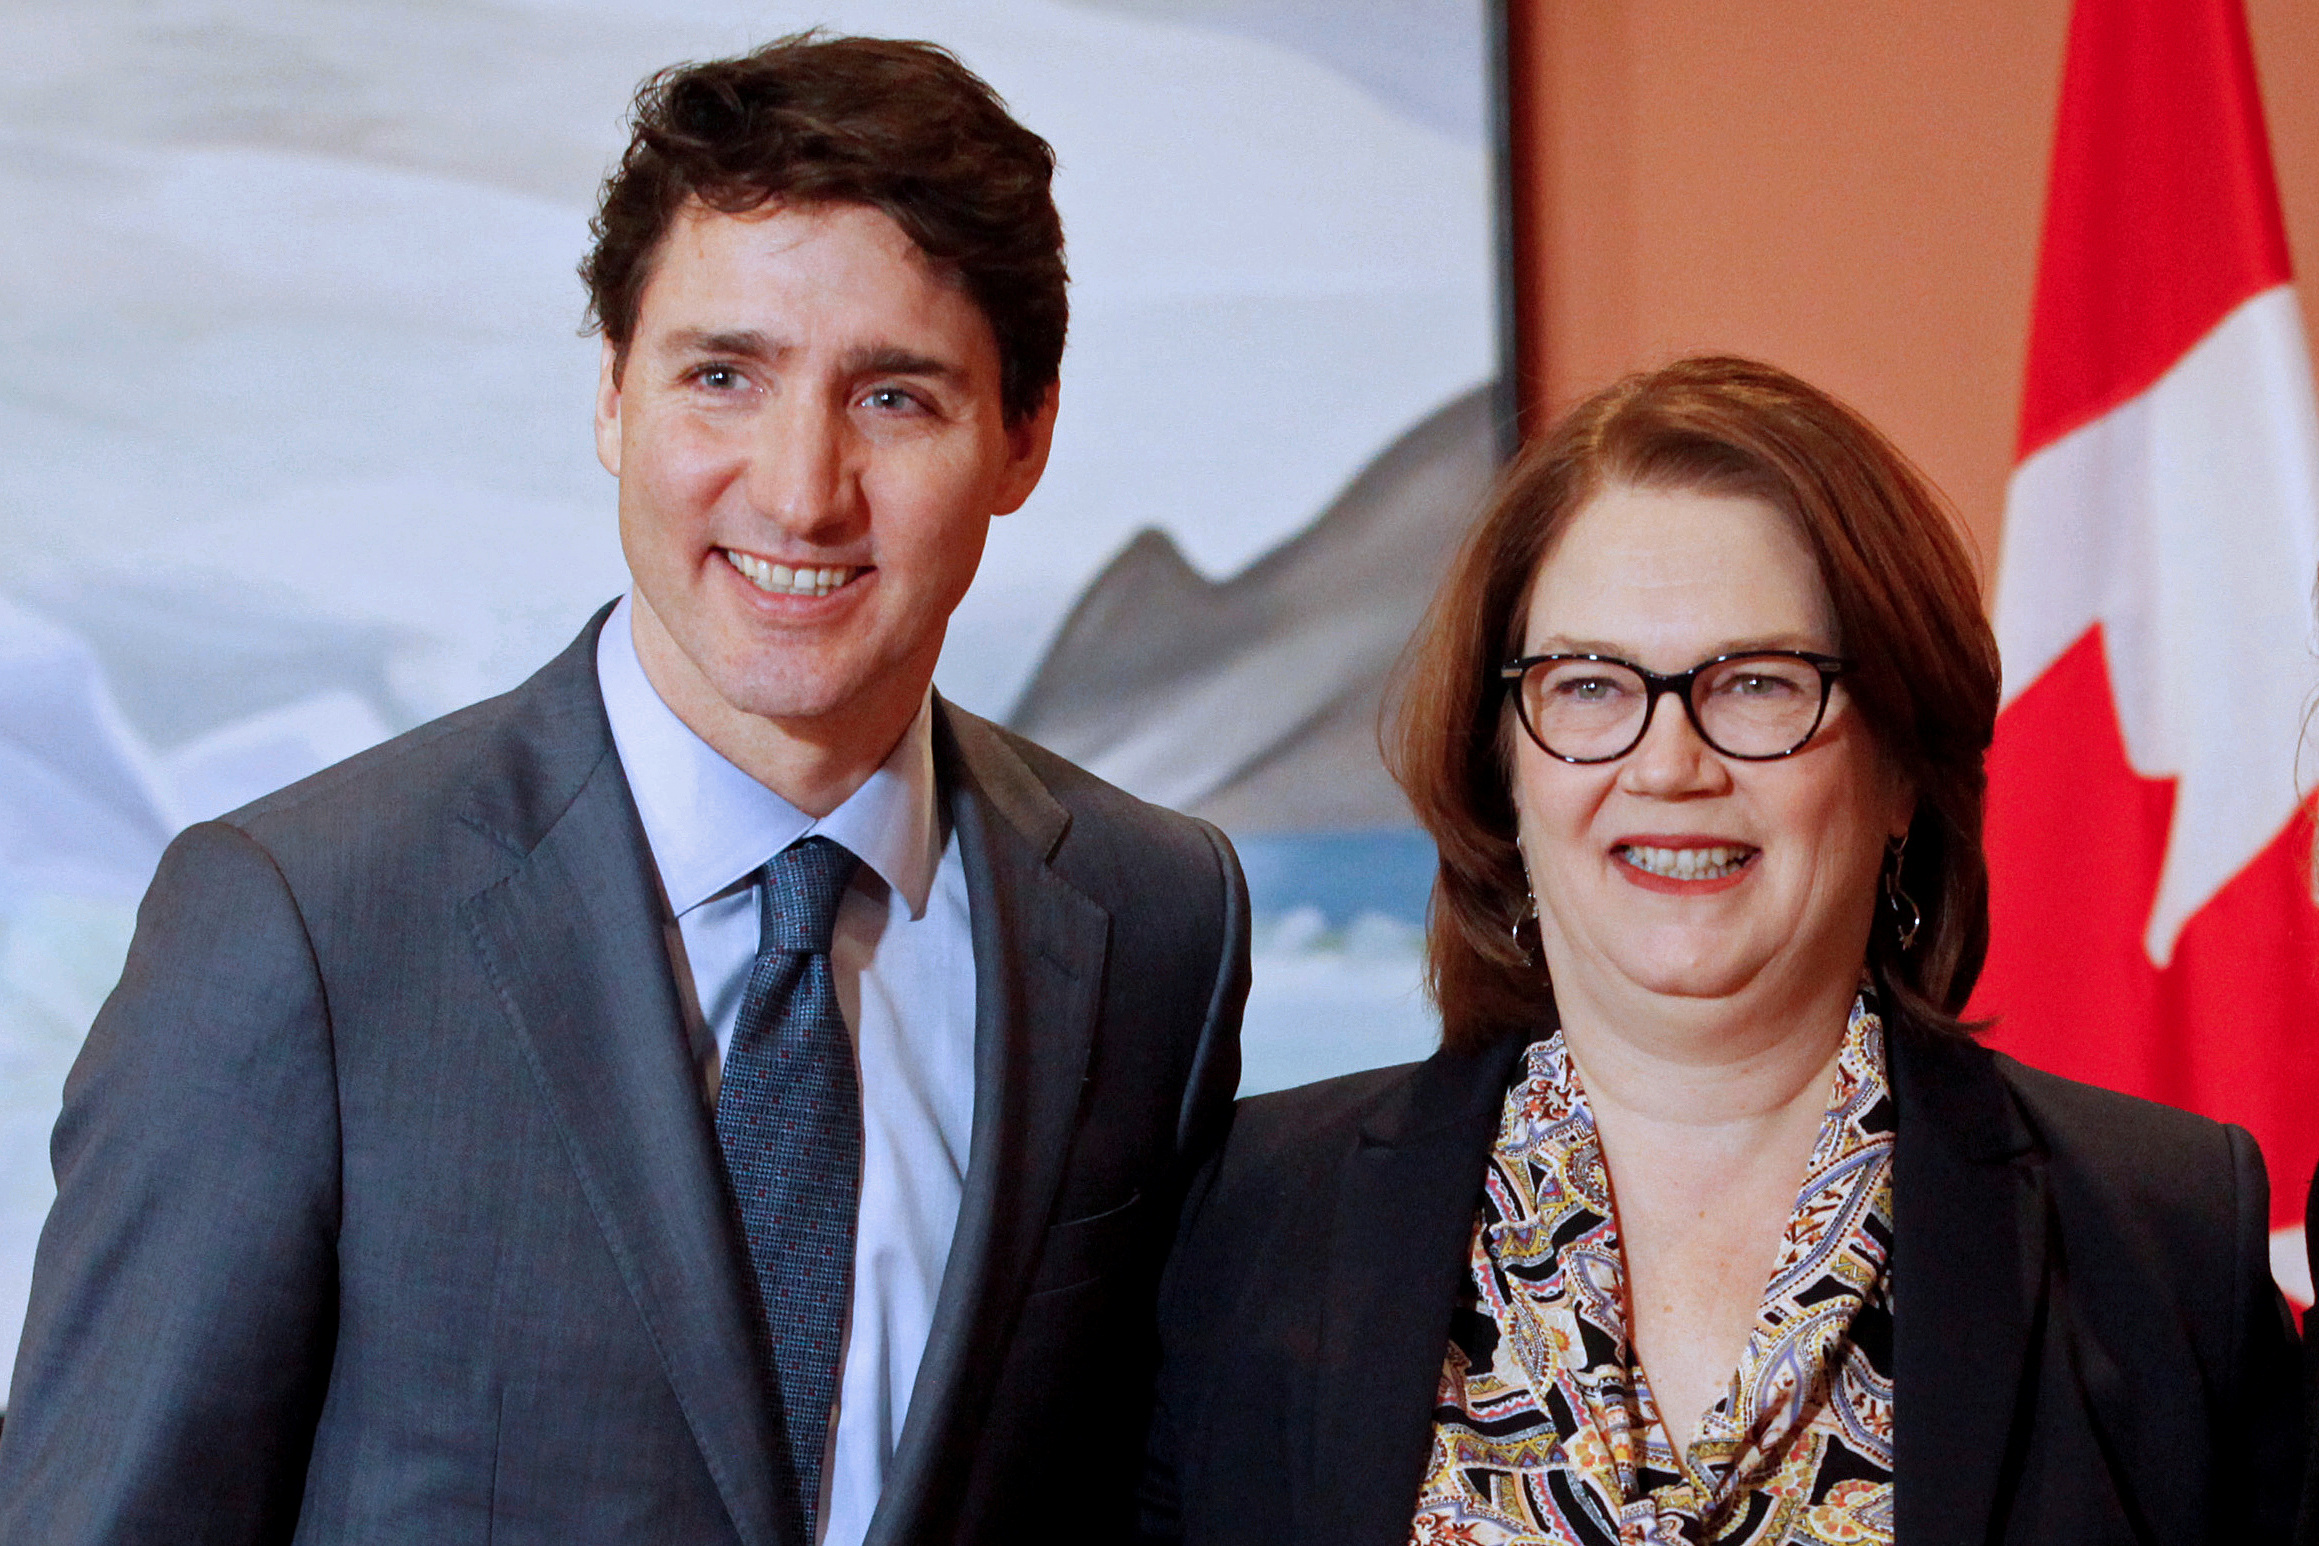 FILE PHOTO: Newly appointed president of the Treasury Board Jane Philpott poses for a photo with Prime Minister Justin Trudeau during Trudeau's cabinet shuffle, in Ottawa, Ontario, Canada, January 14, 2019. REUTERS/Patrick Doyle